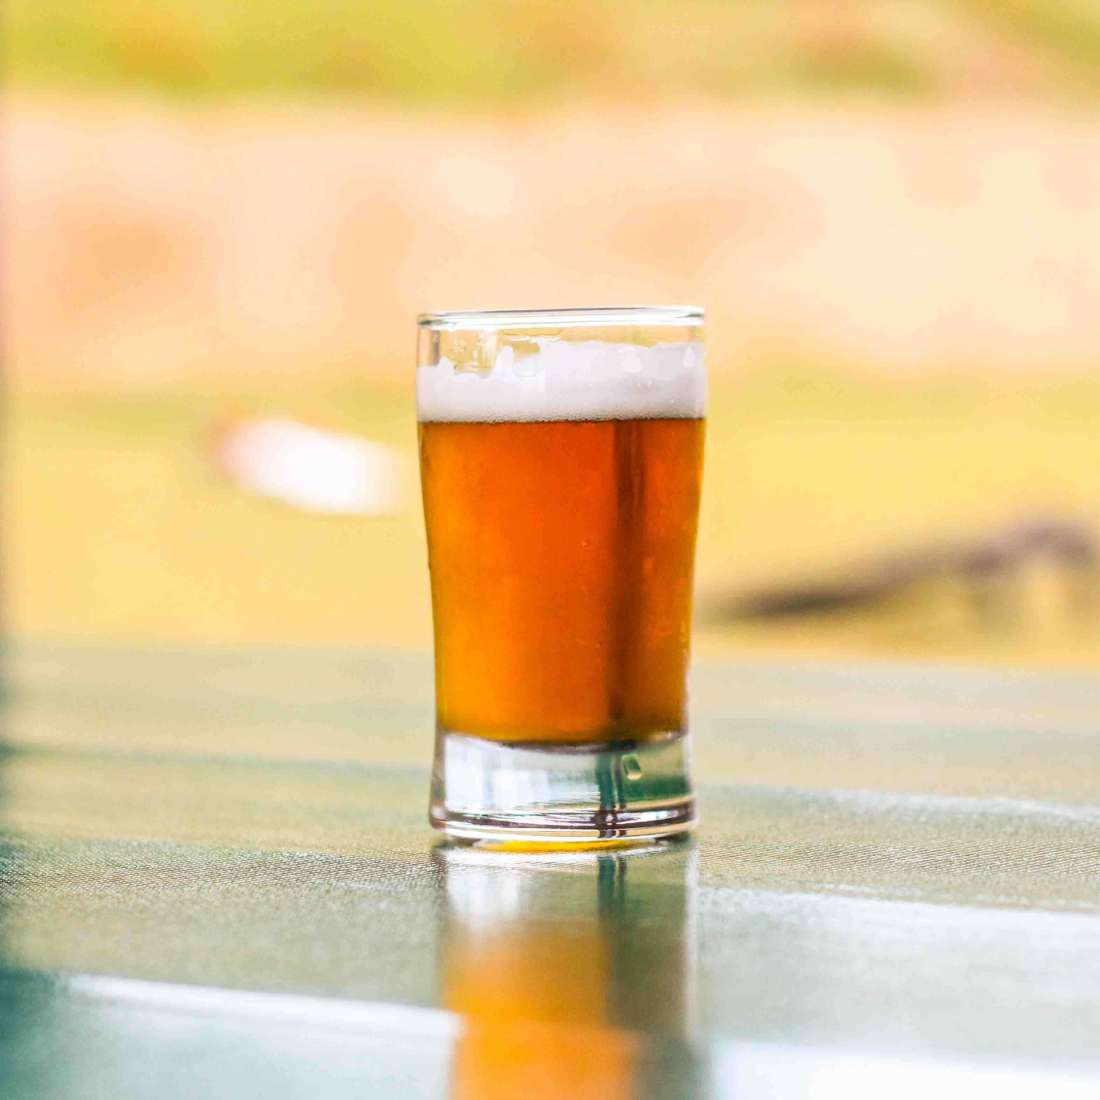 amber colored beer called King T in a tasting glass on a picnic table.